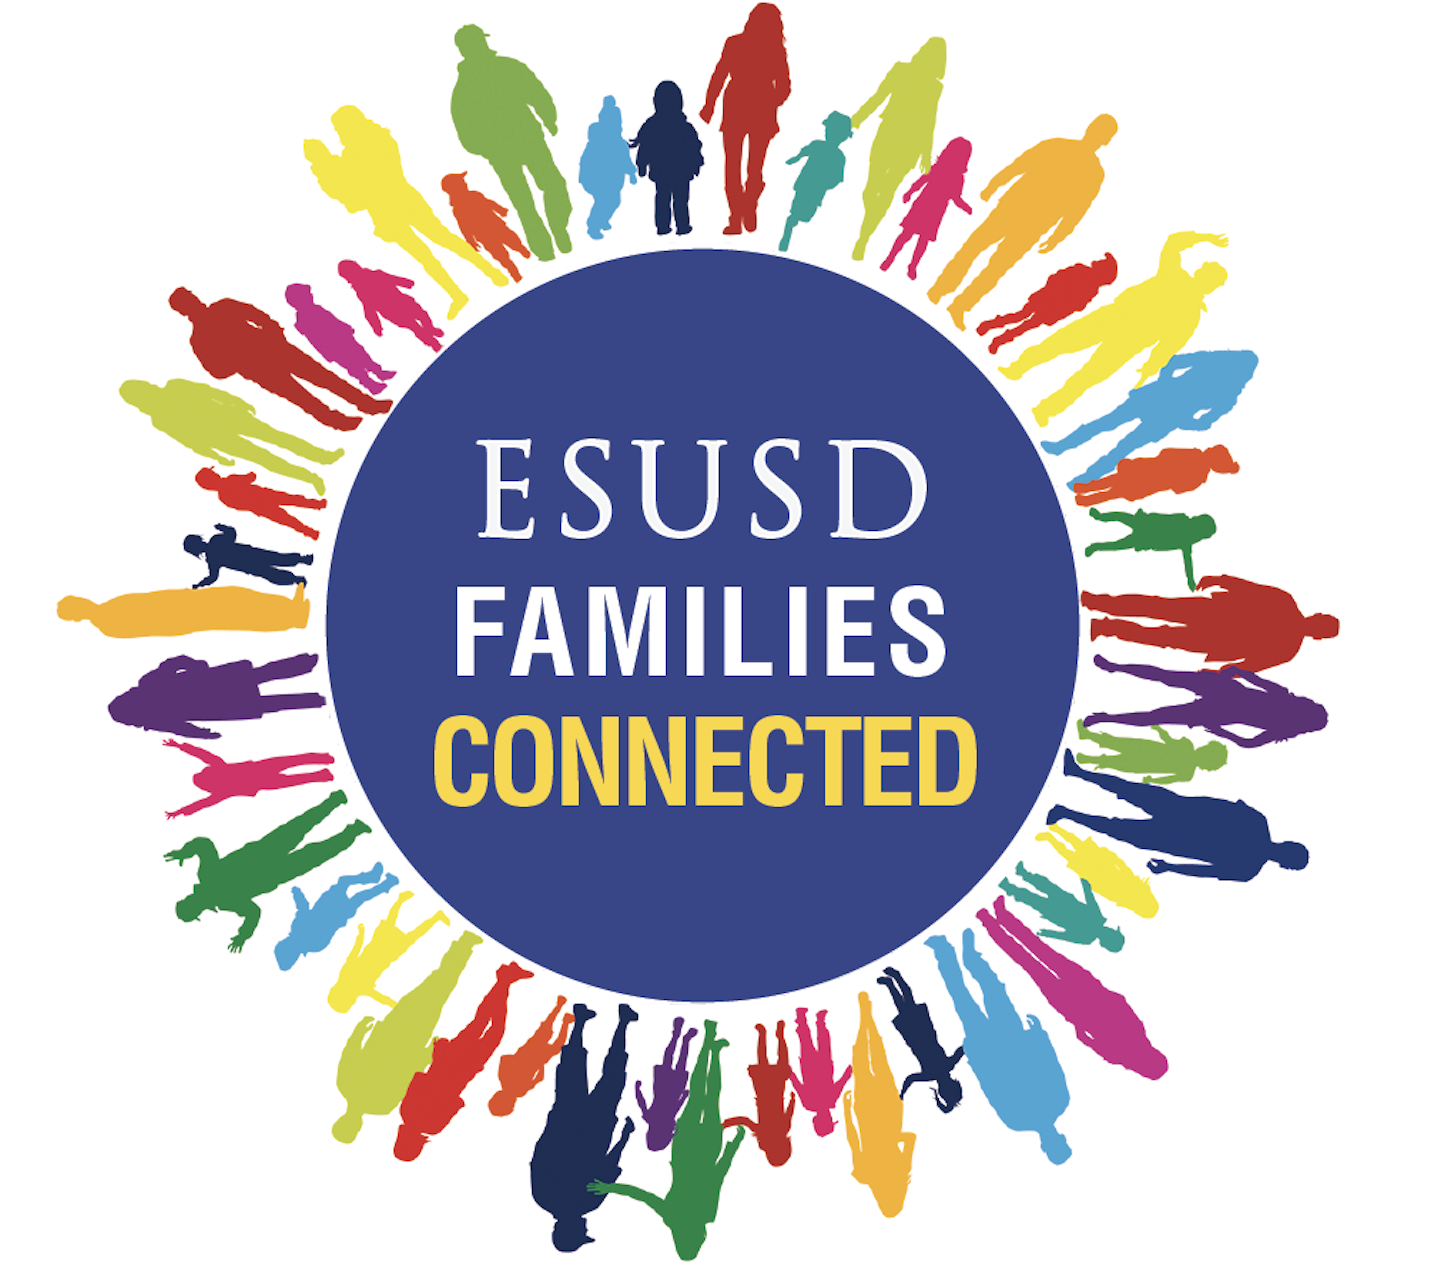 ESUSD Families Connected